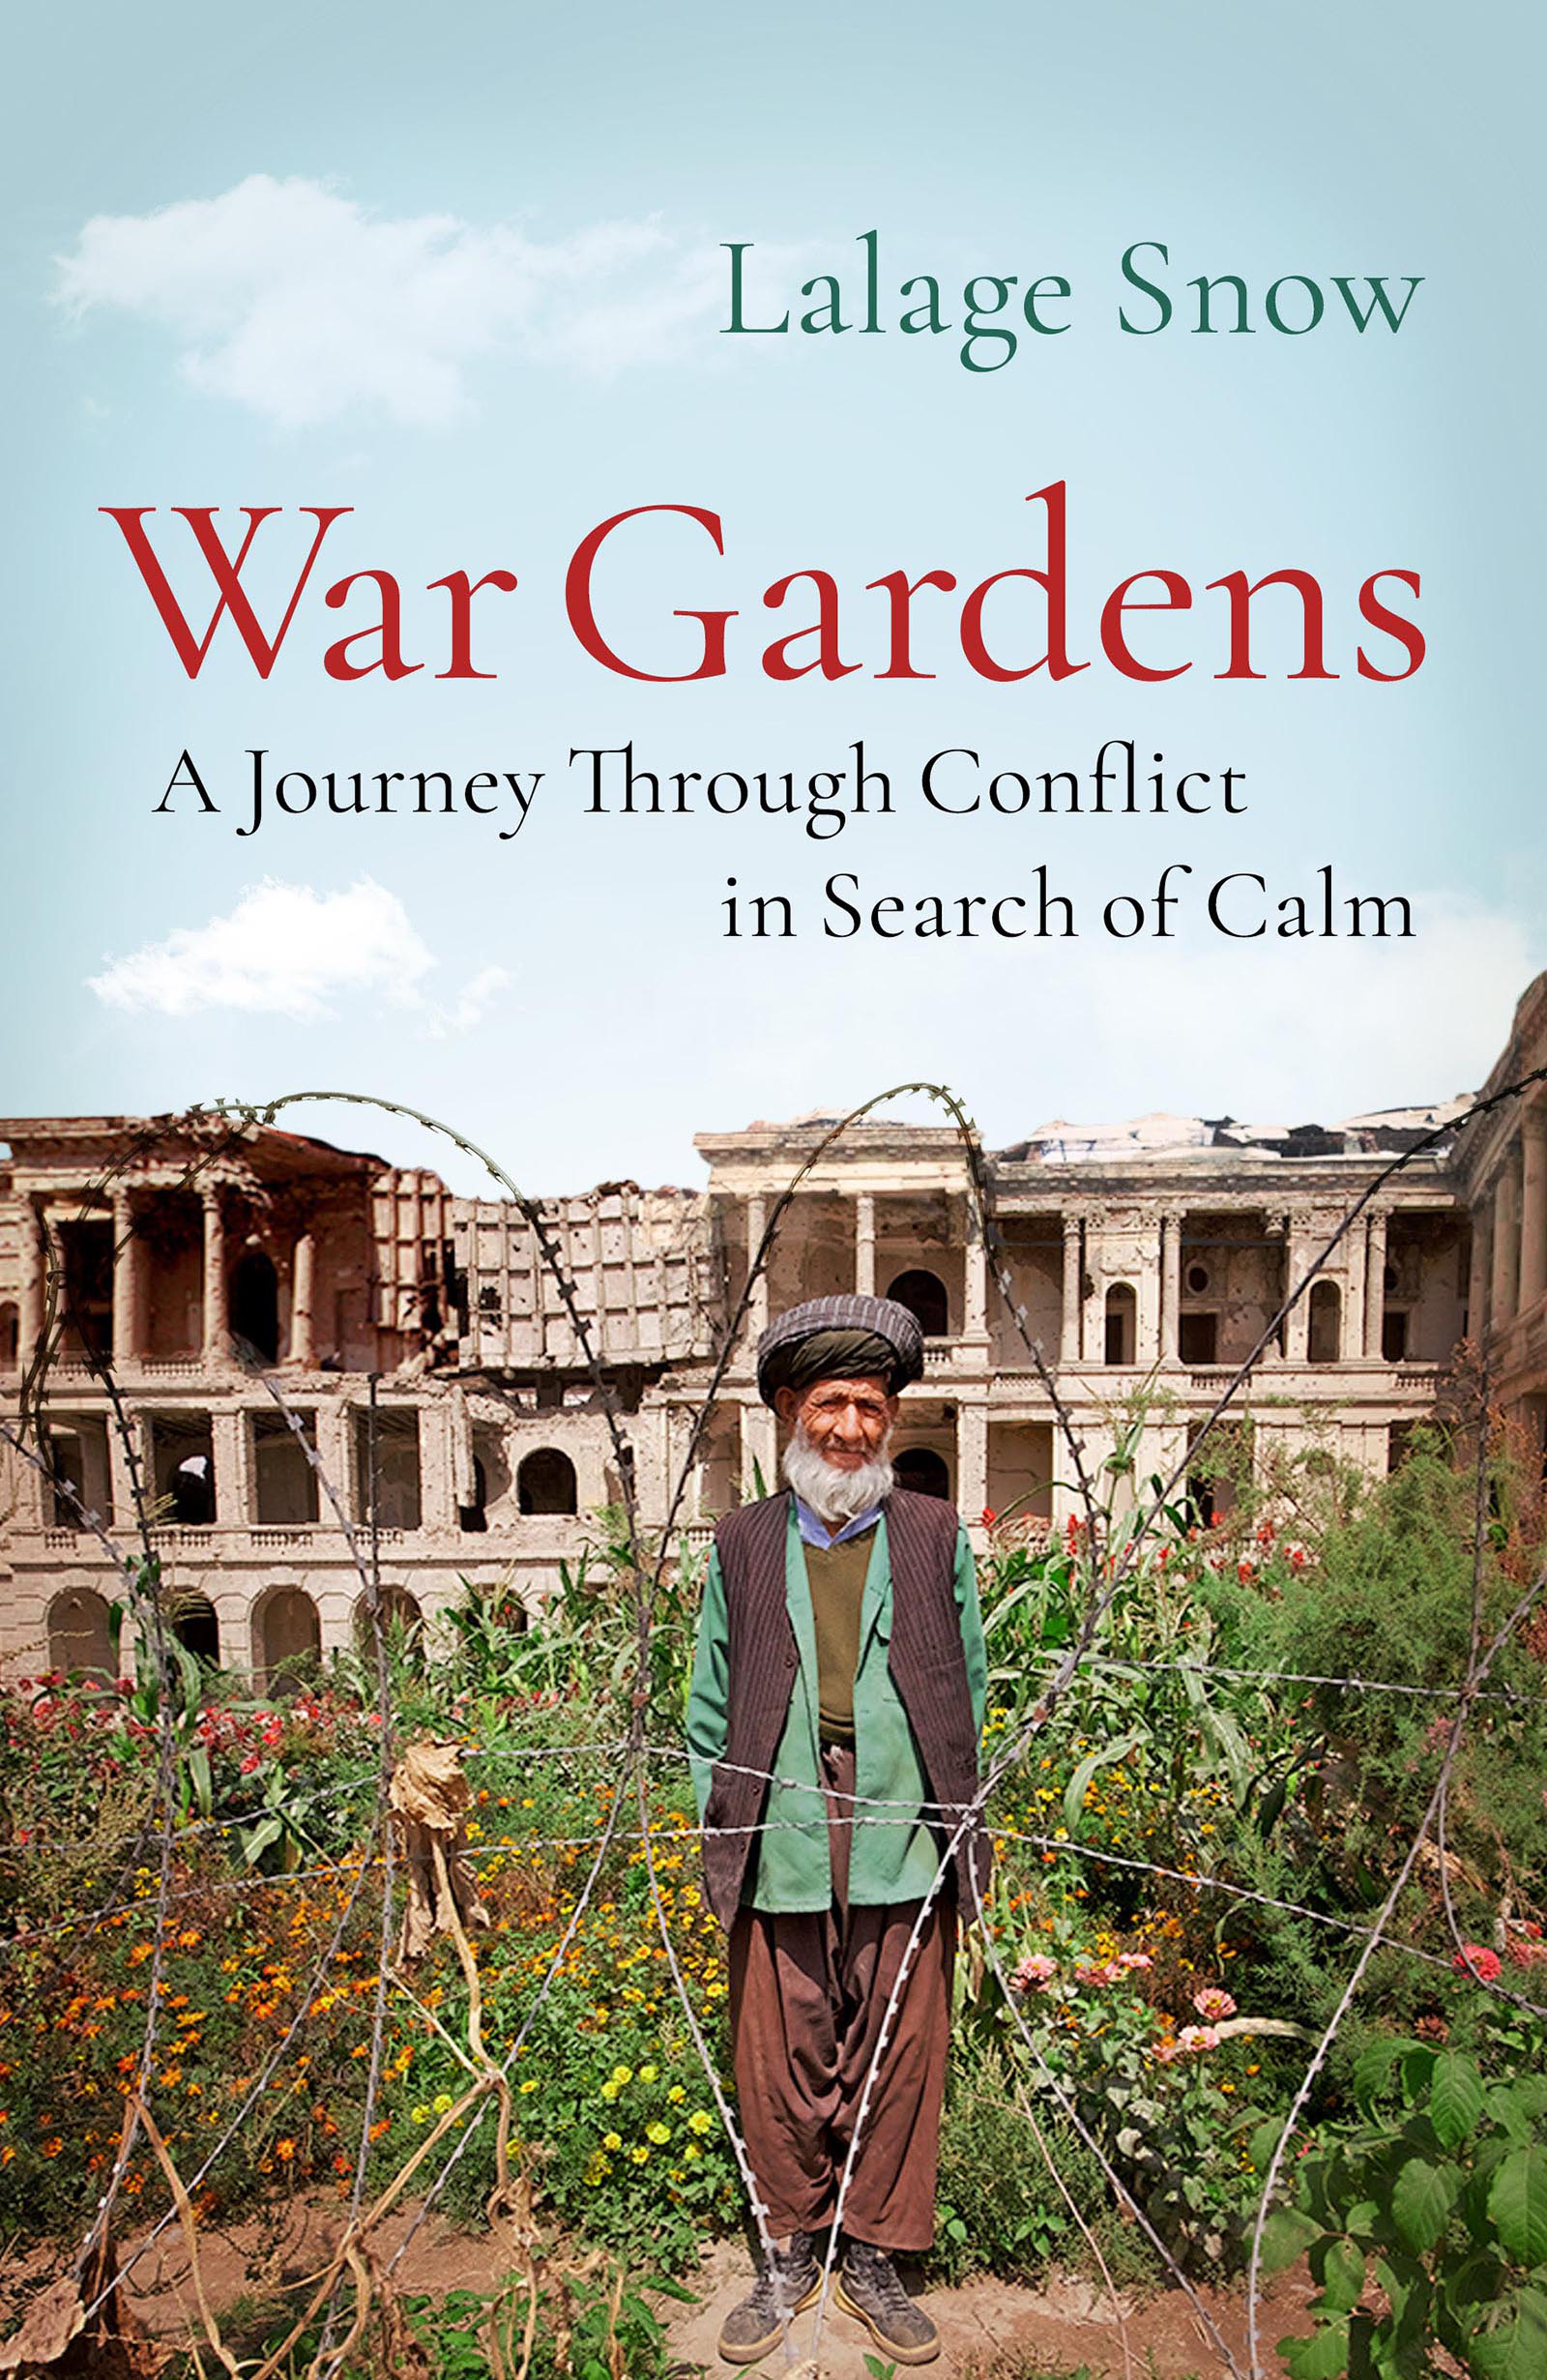 Image result for War Gardens: A Journey Through Conflict in Search of Calm by Lalage Snow